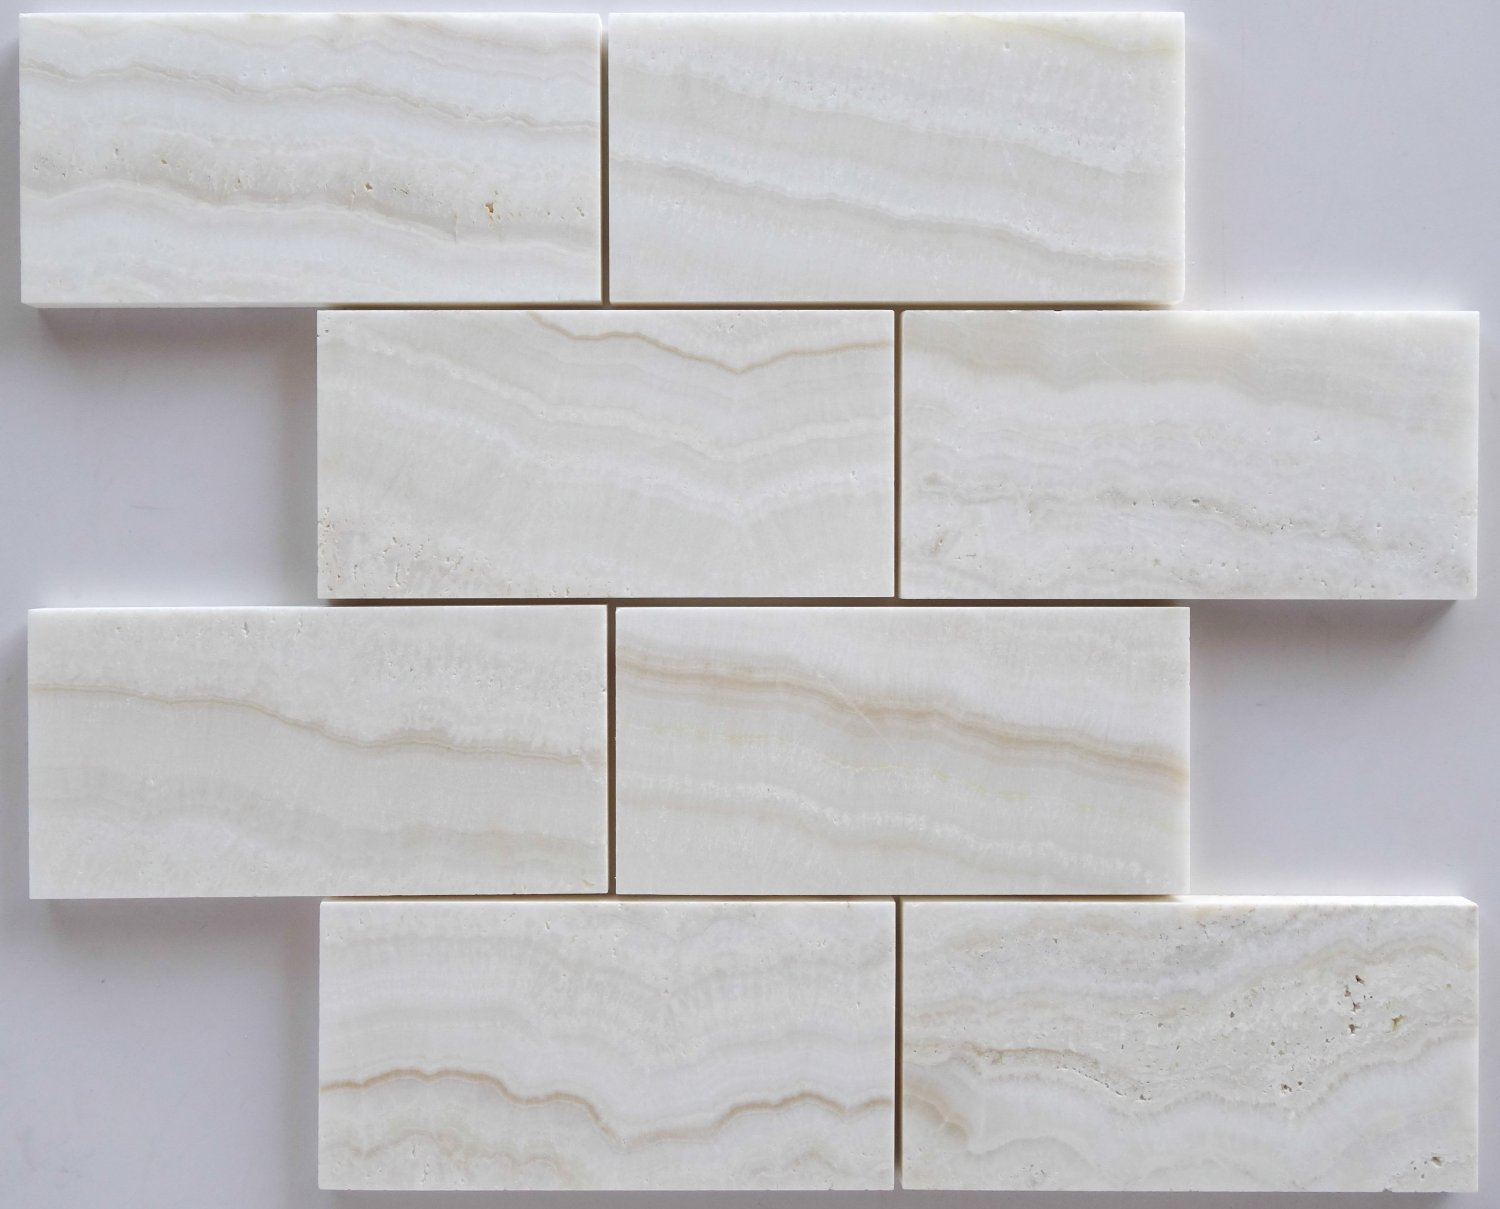 Onyx Tile The Tile Home Guide